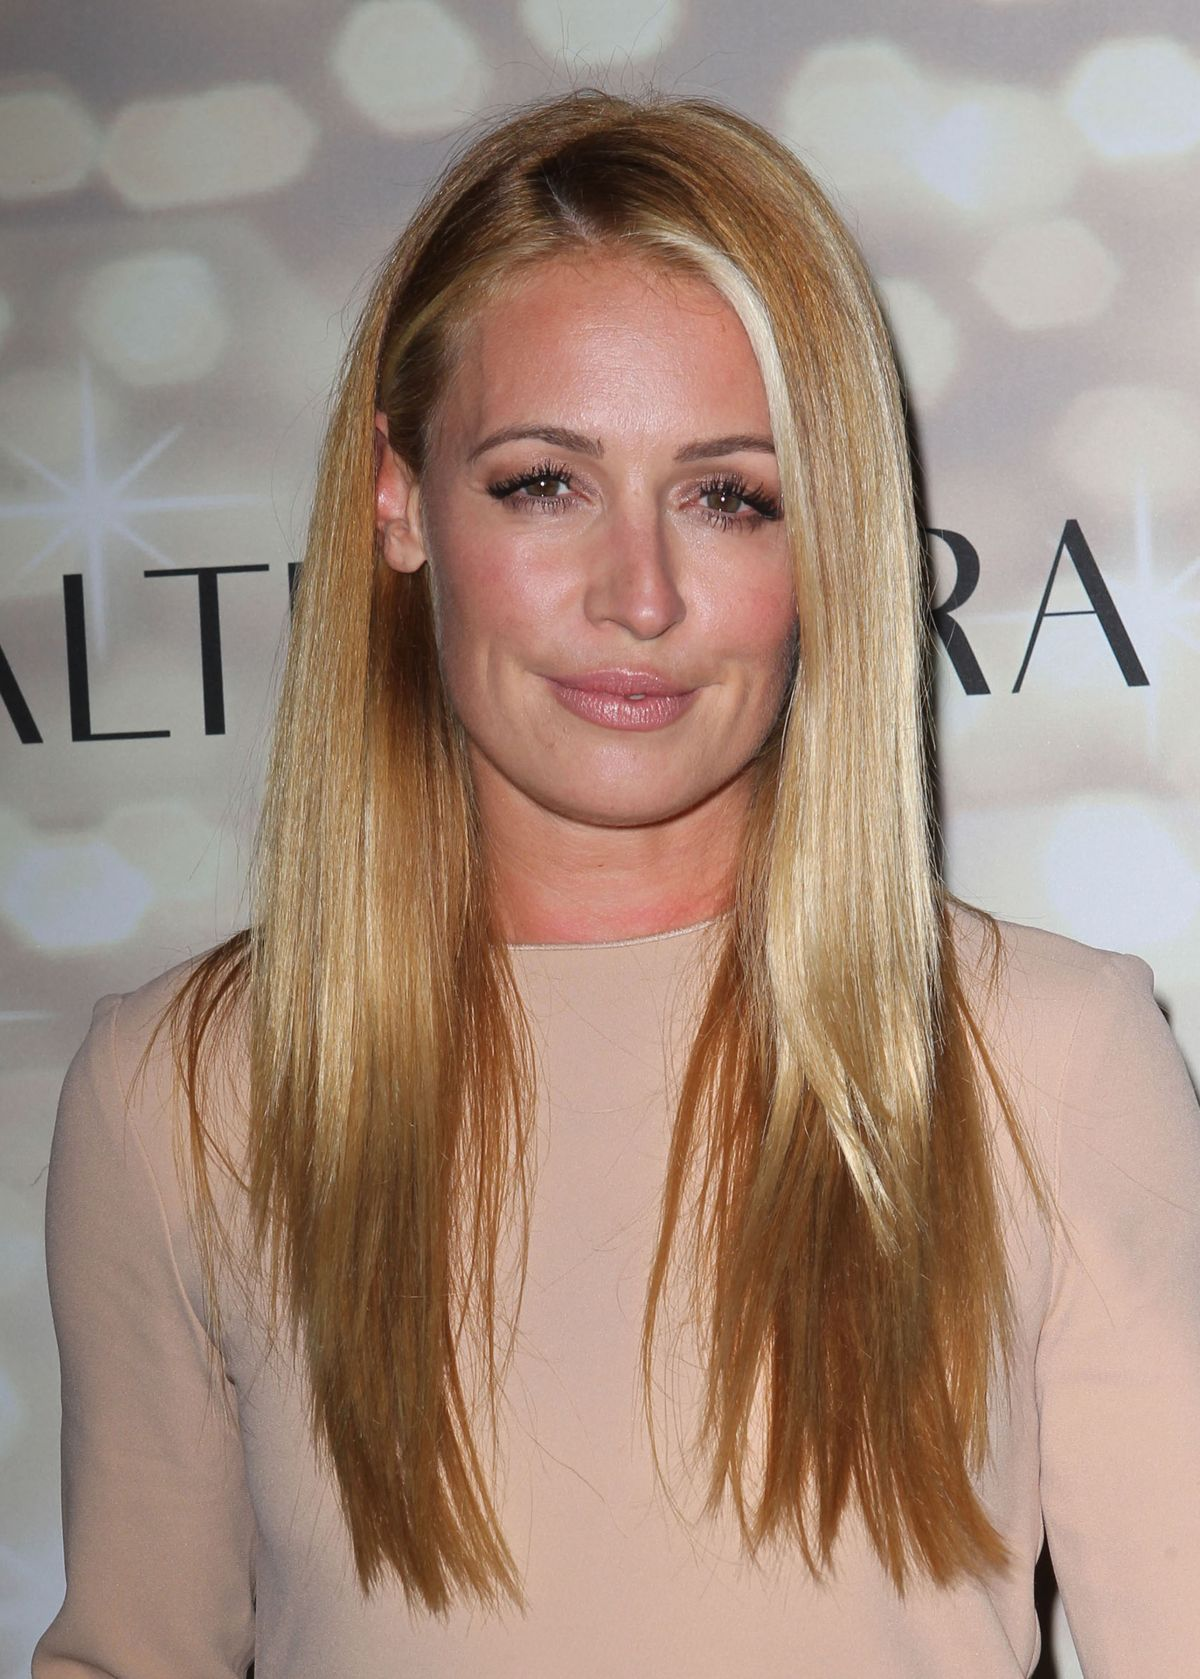 how tall is cat deeley